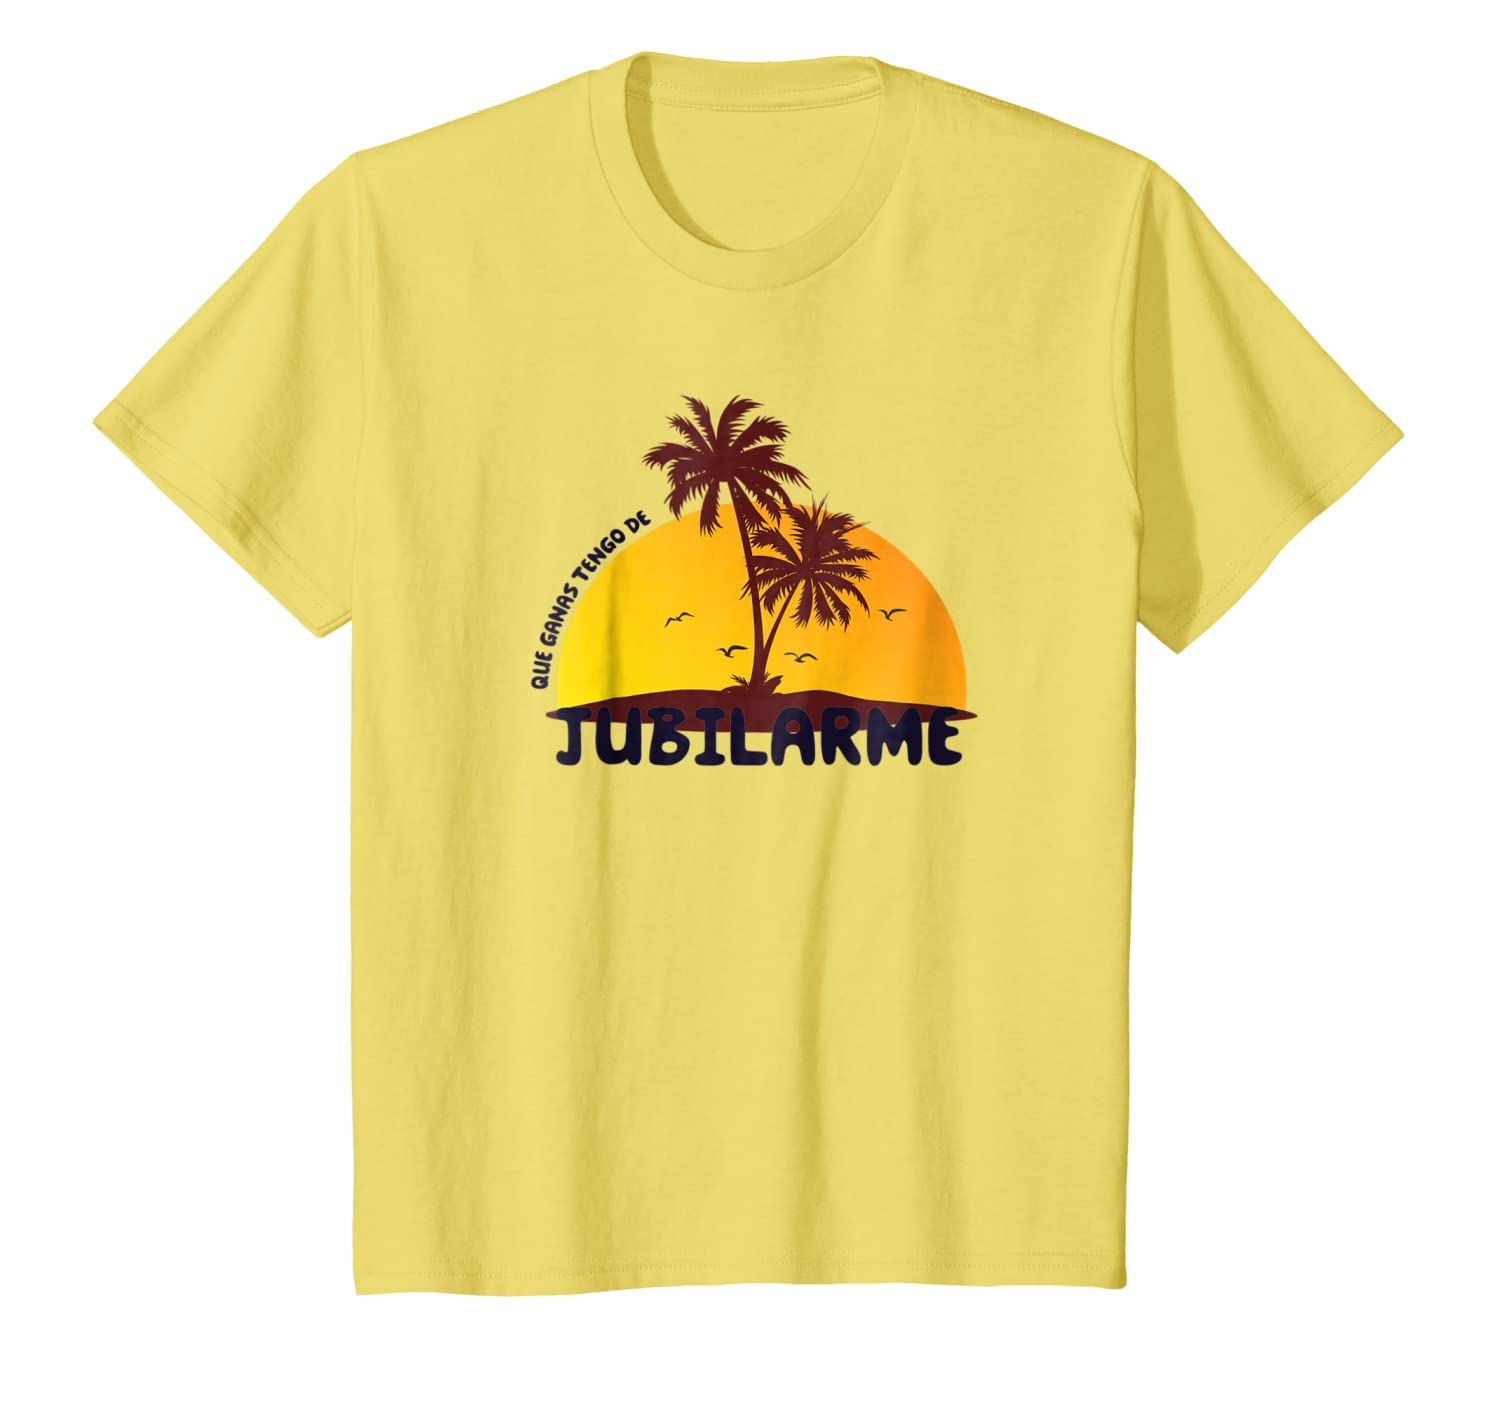 Que Ganas De Jubilarme T-Shirt Funny Saying in Spanish Tee